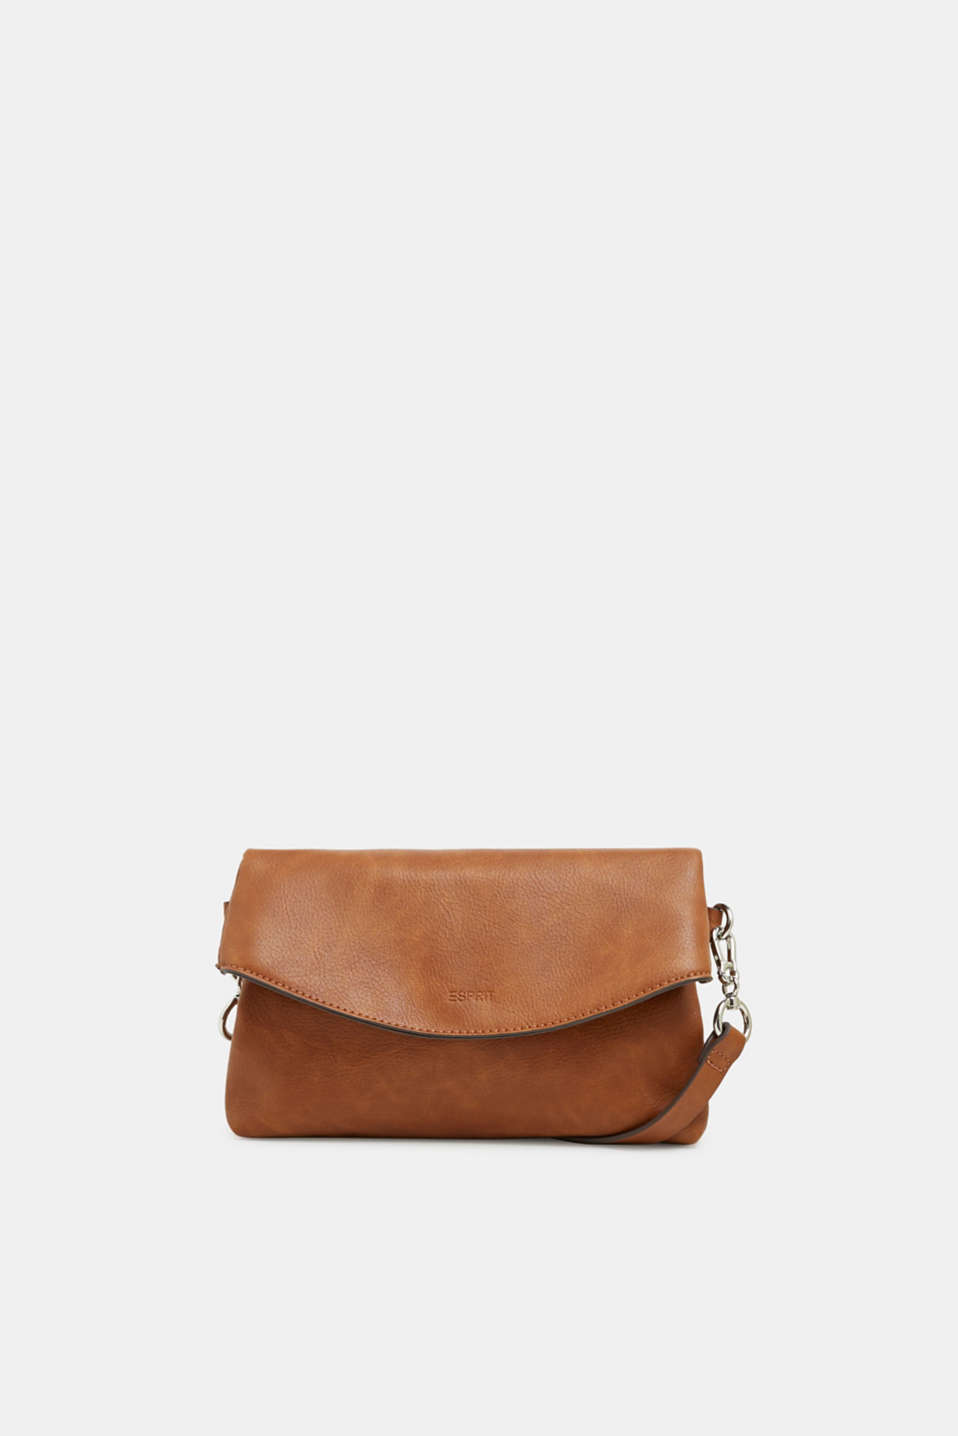 Flapover bag in faux leather, RUST BROWN, detail image number 0